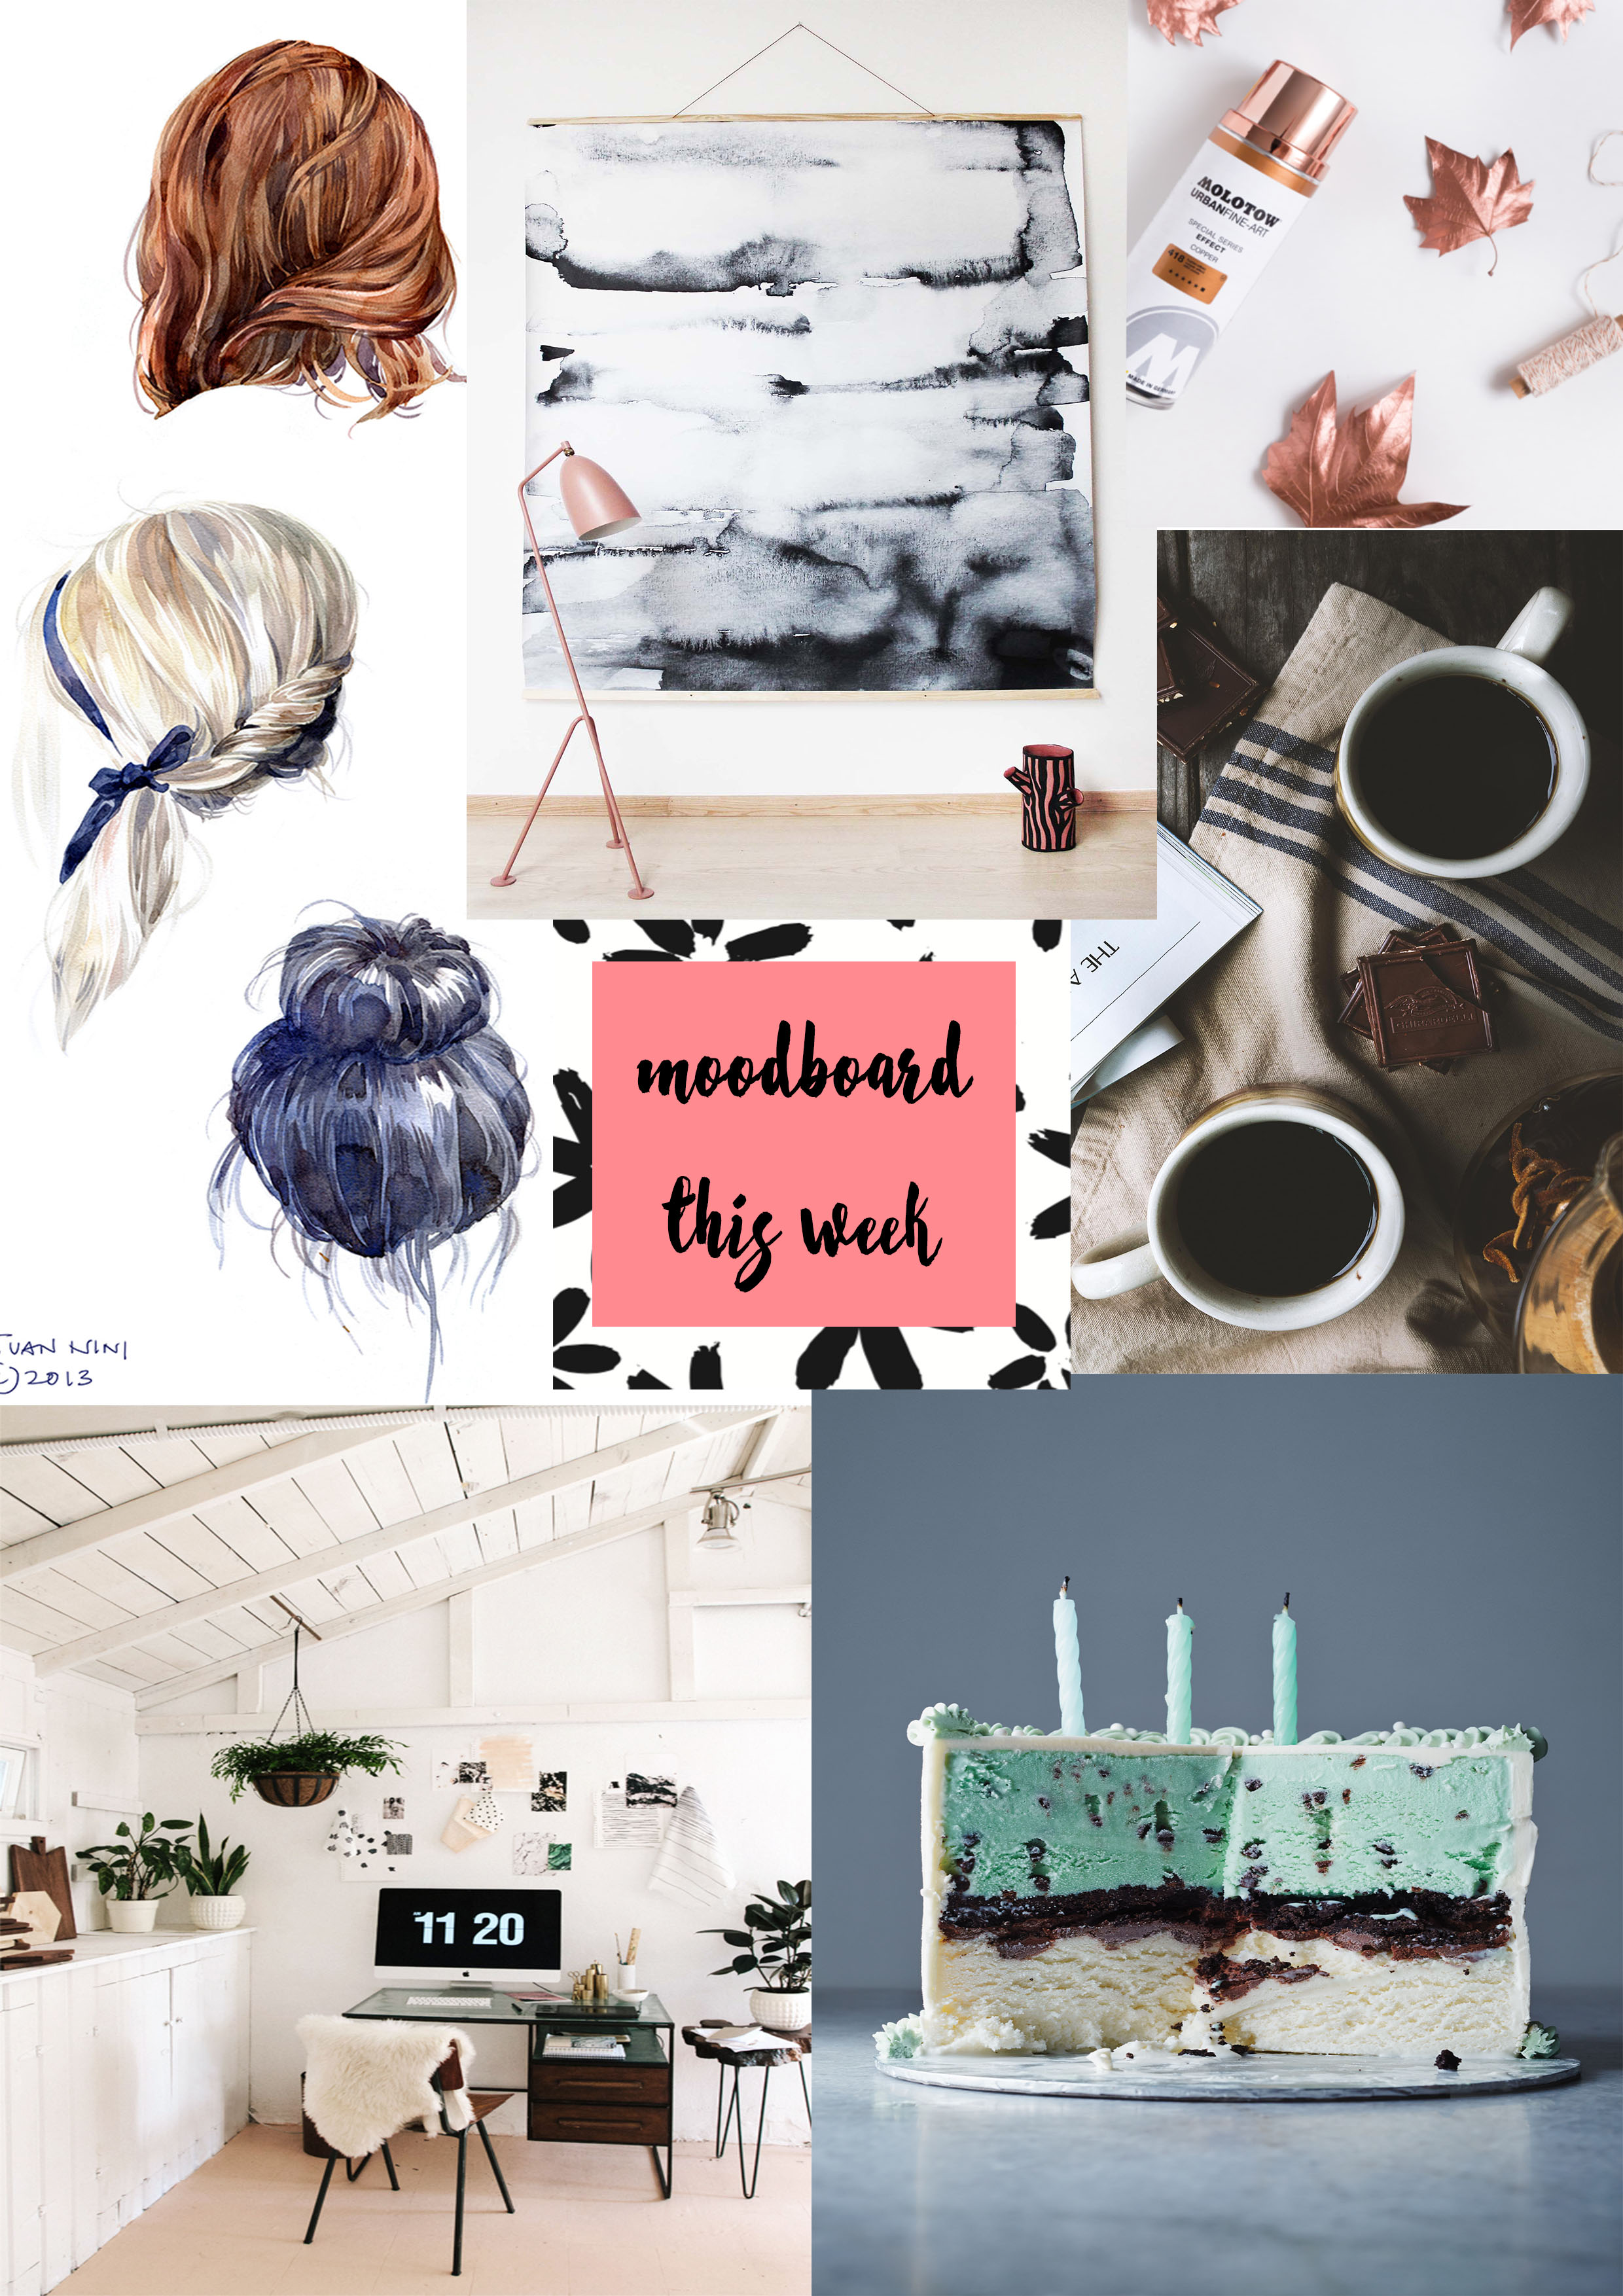 moodboard-3-11-15 // stuff that's inspiring me this week via Opinion9.com